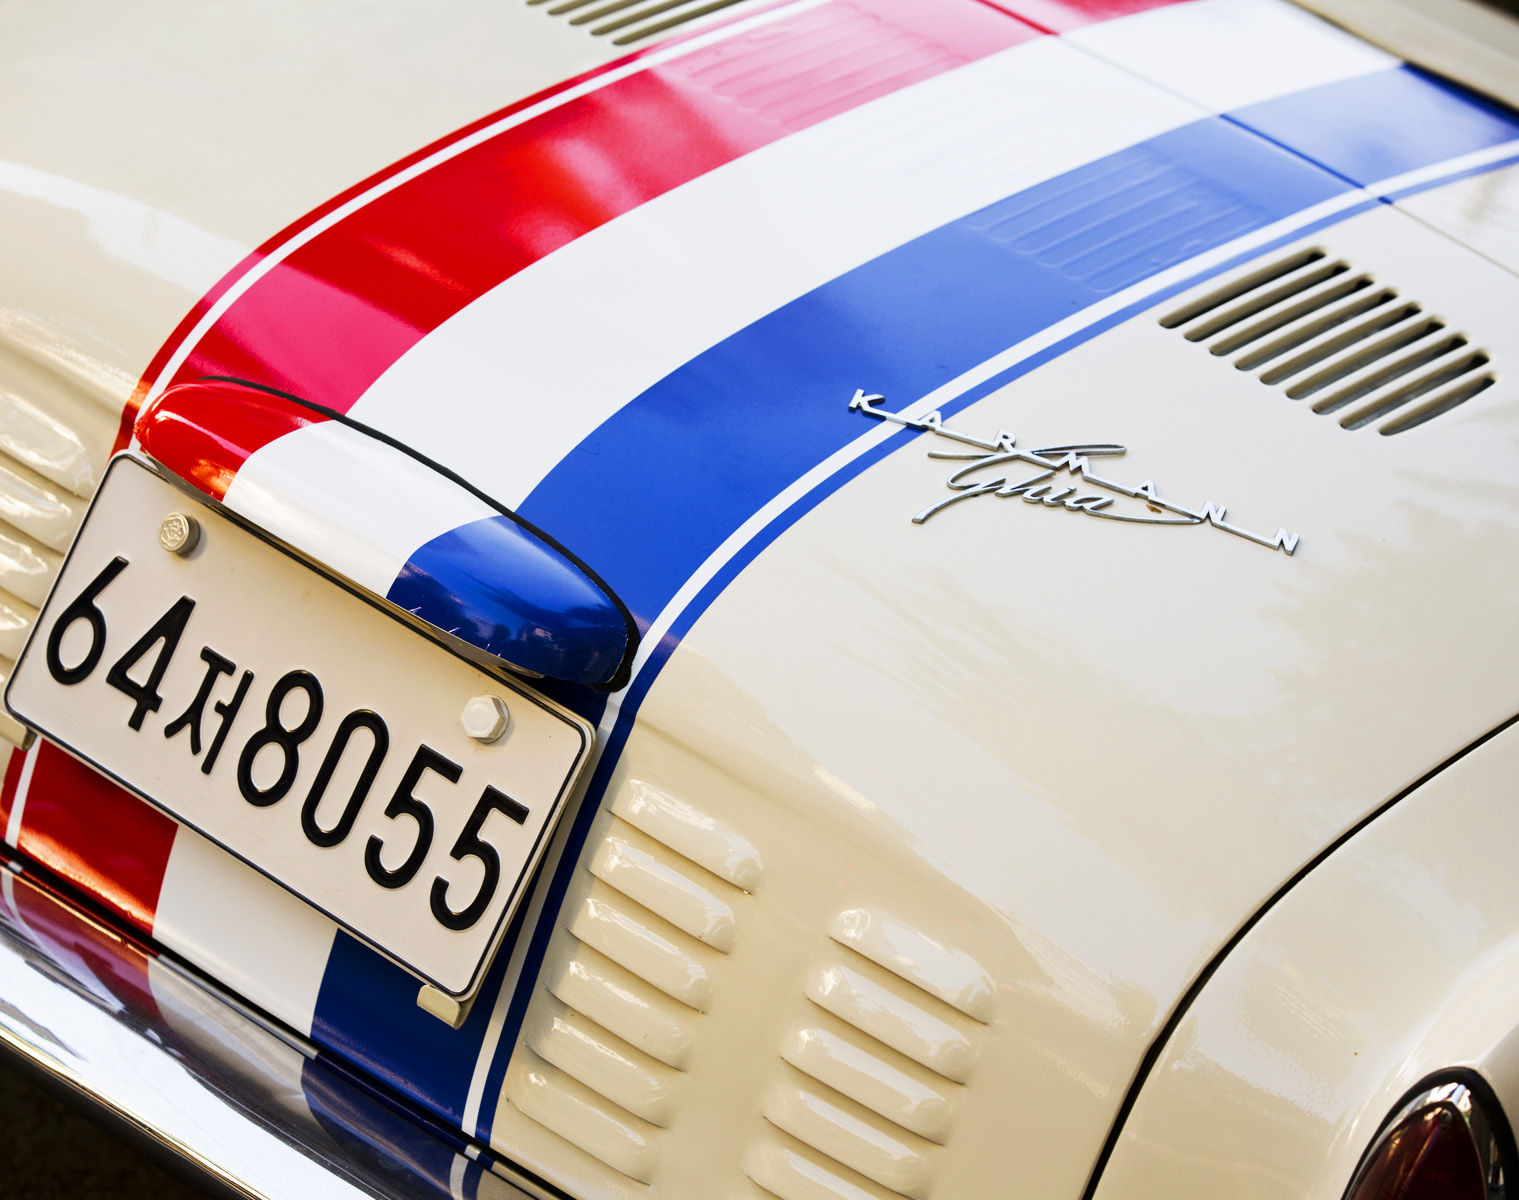 VW KARMANN GHIA 1968 white with Red and Blue stripes in Seoul, South Korea